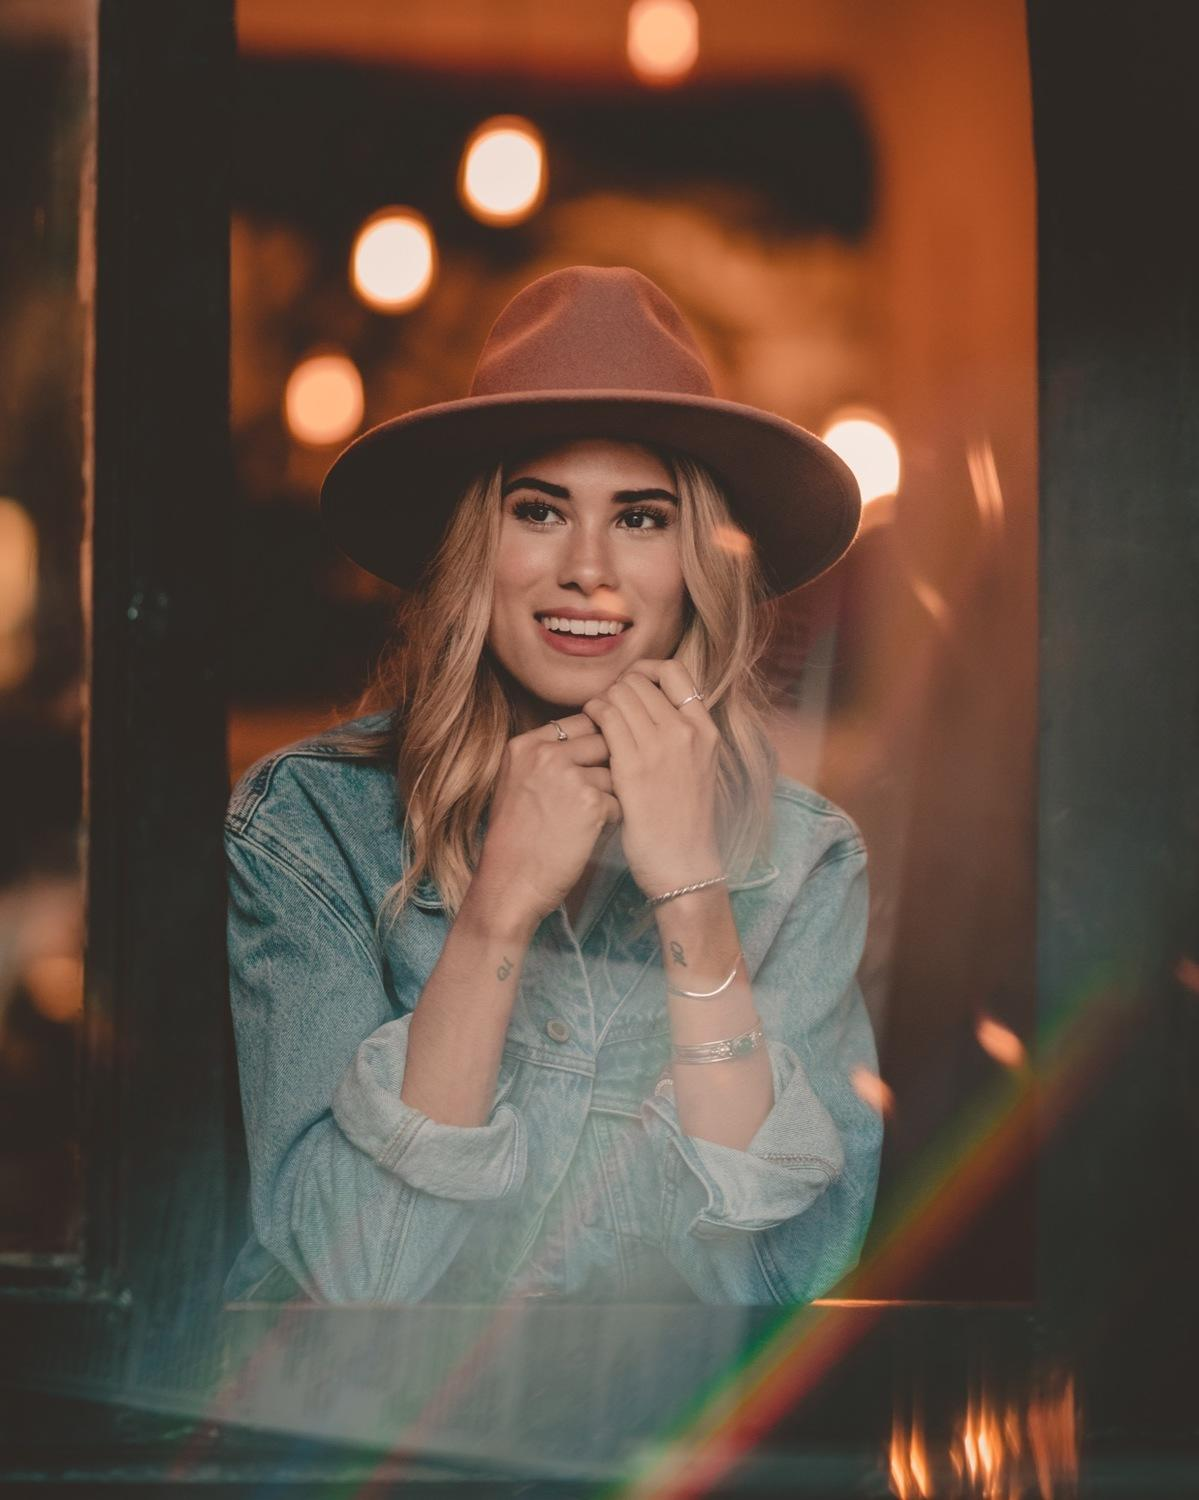 Light, Lenses & Bokeh: How To Create Magic Portraits